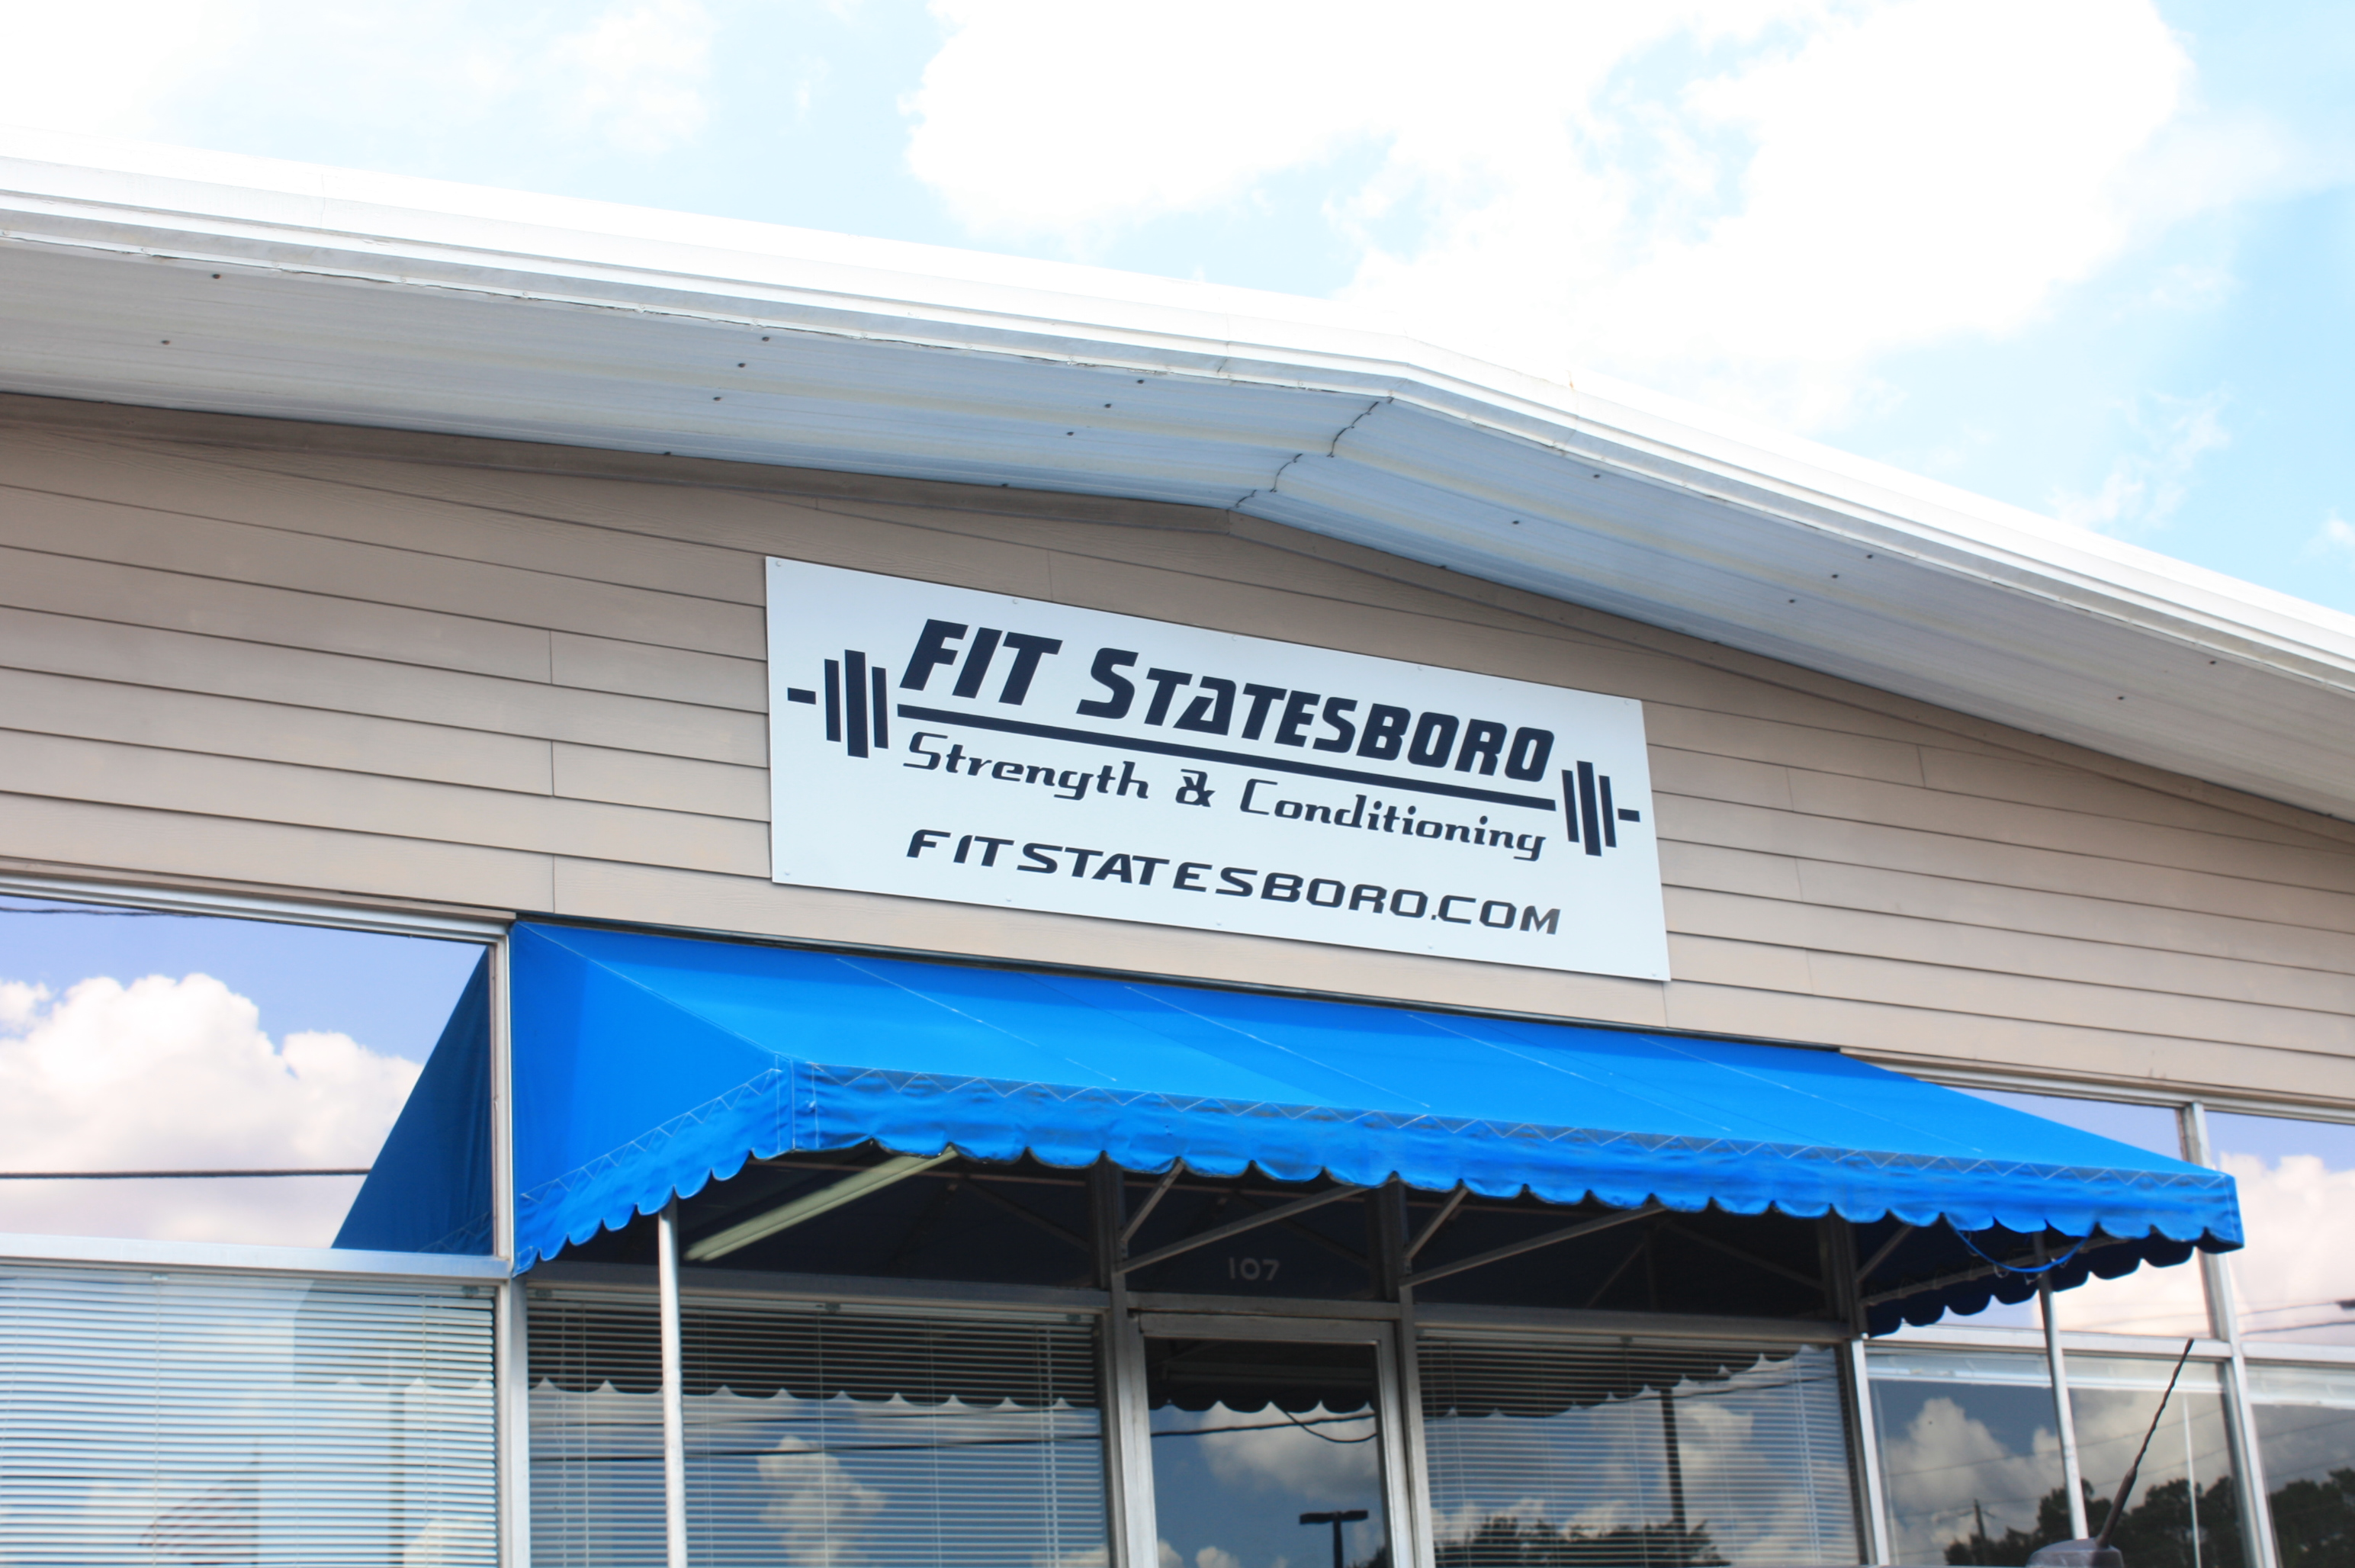 FIT Statesboro Expansion